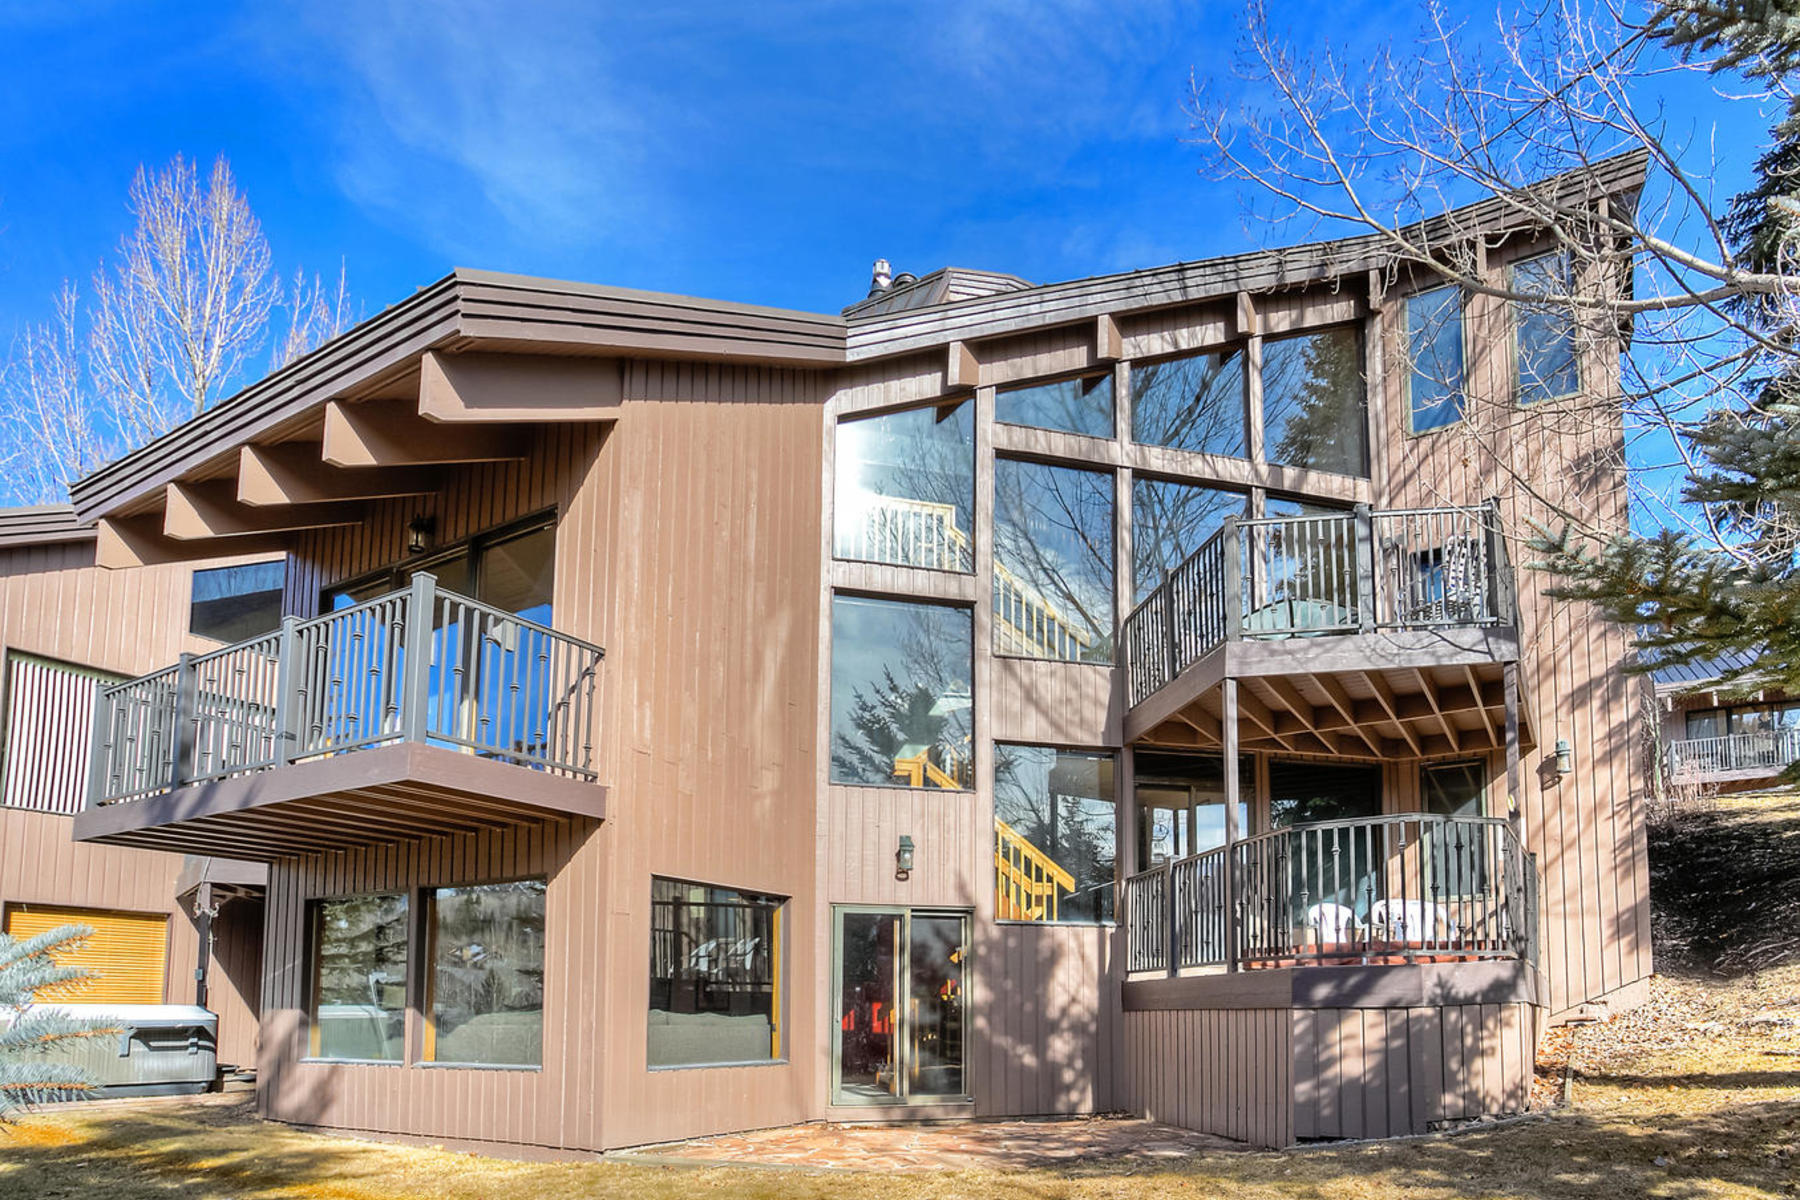 Townhouse for Sale at Fabulous and Sunny Deer Valley Mountain Townhome with Postcard Views 1240 Pinnacle Dr #14 Park City, Utah, 84060 United States